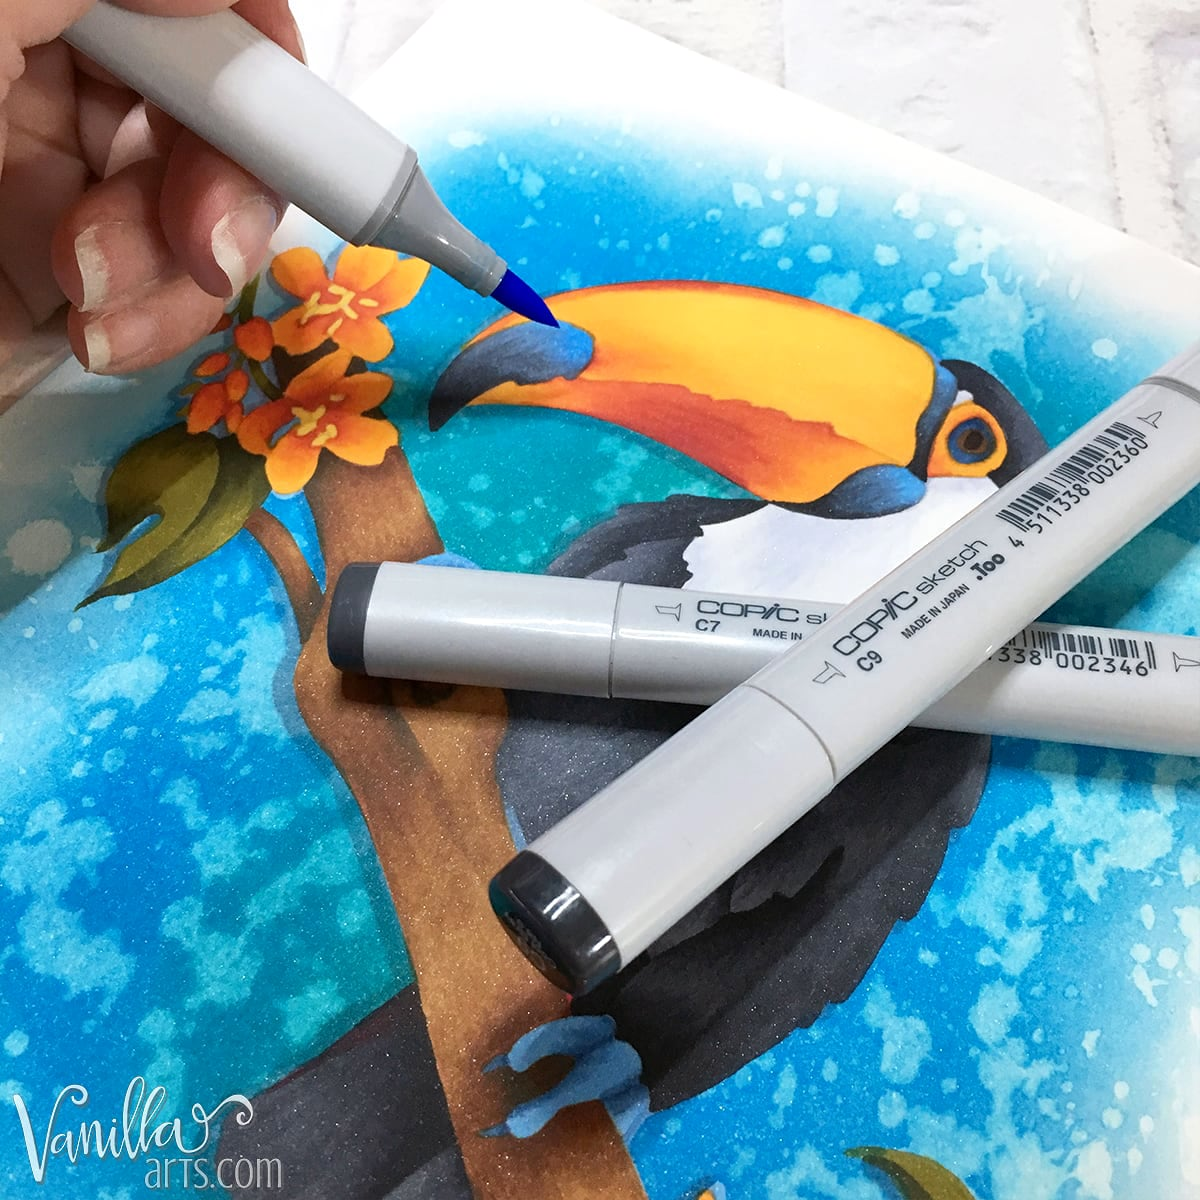 Copic Marker color combinations: The blending combination here is C9, C7, and B32.